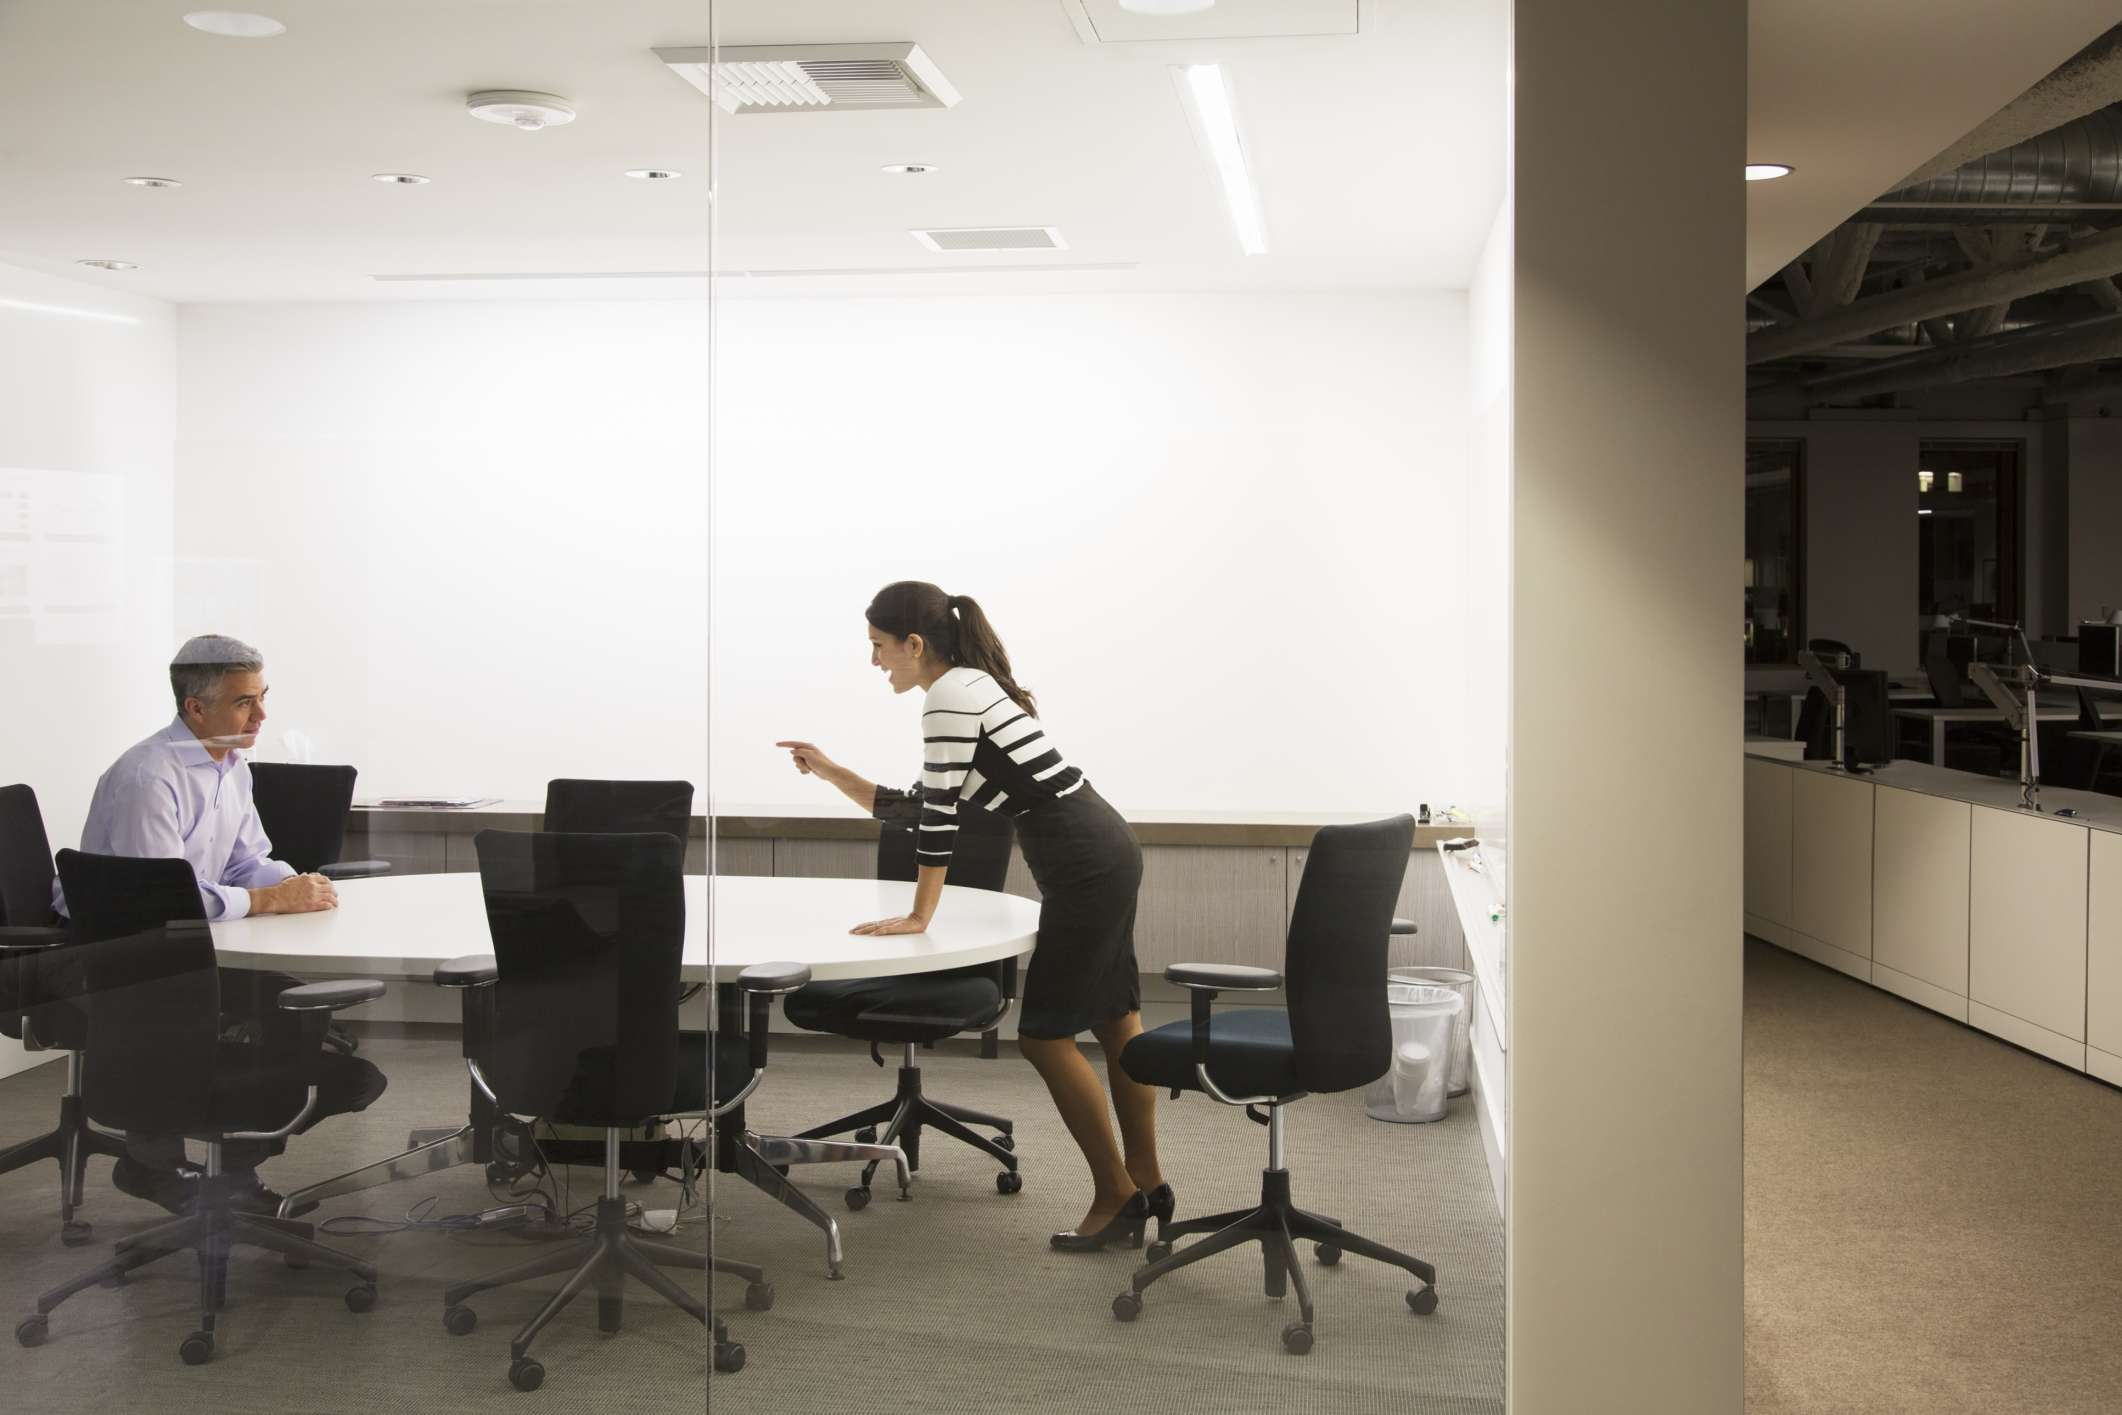 woman yelling at man in conference room